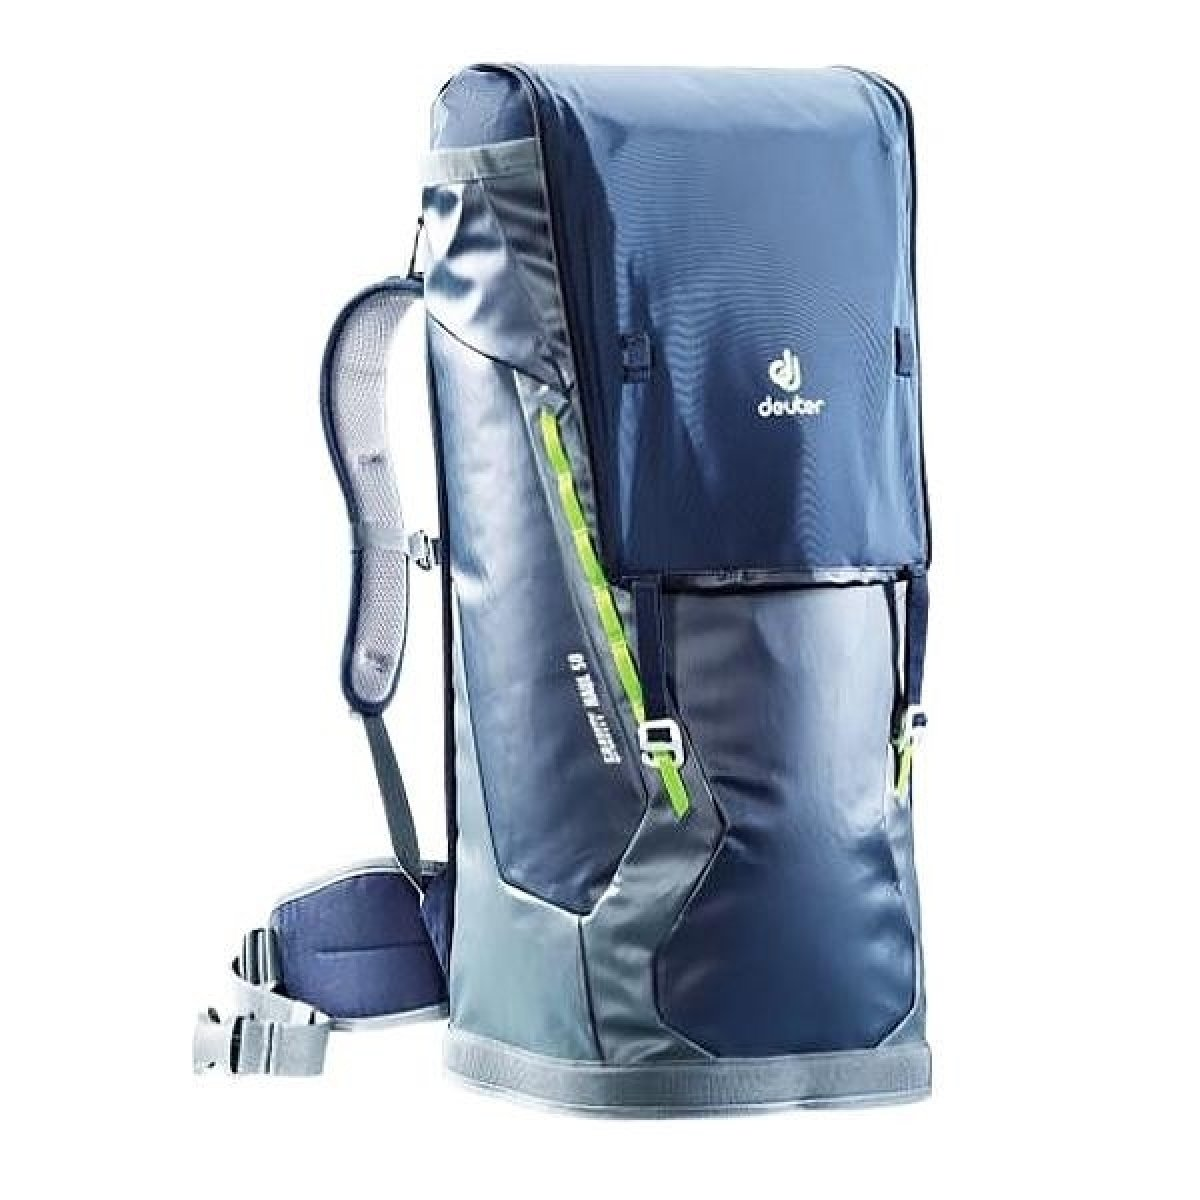 Рюкзак Deuter Gravity Haul 50 цвет 3400 navy-granite 3362317 3400